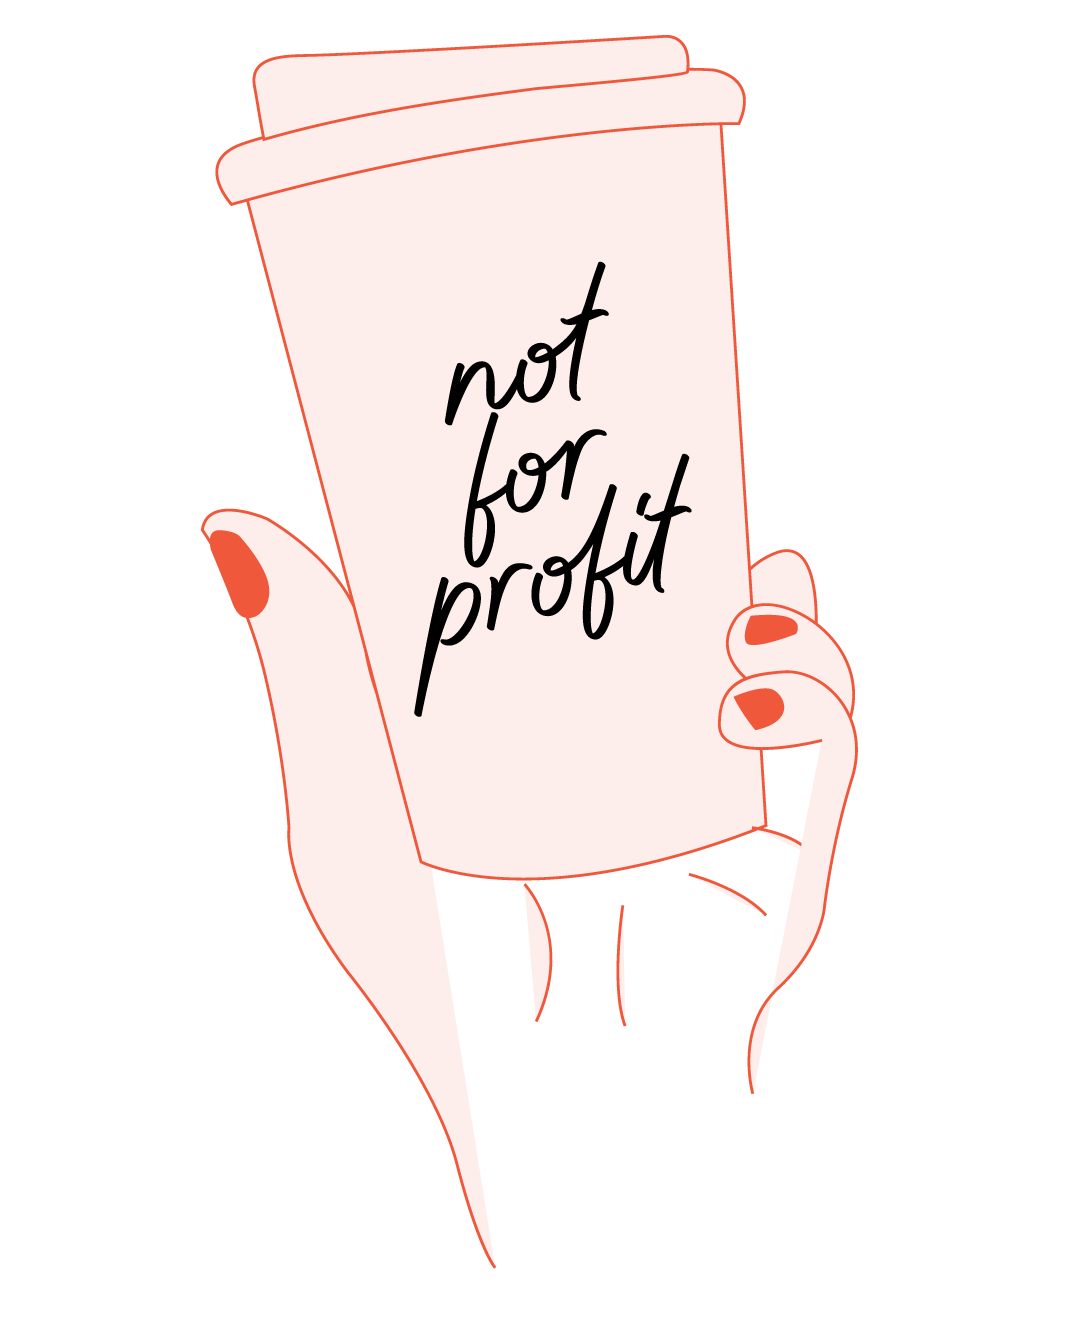 Graphic of cup with not for profit text